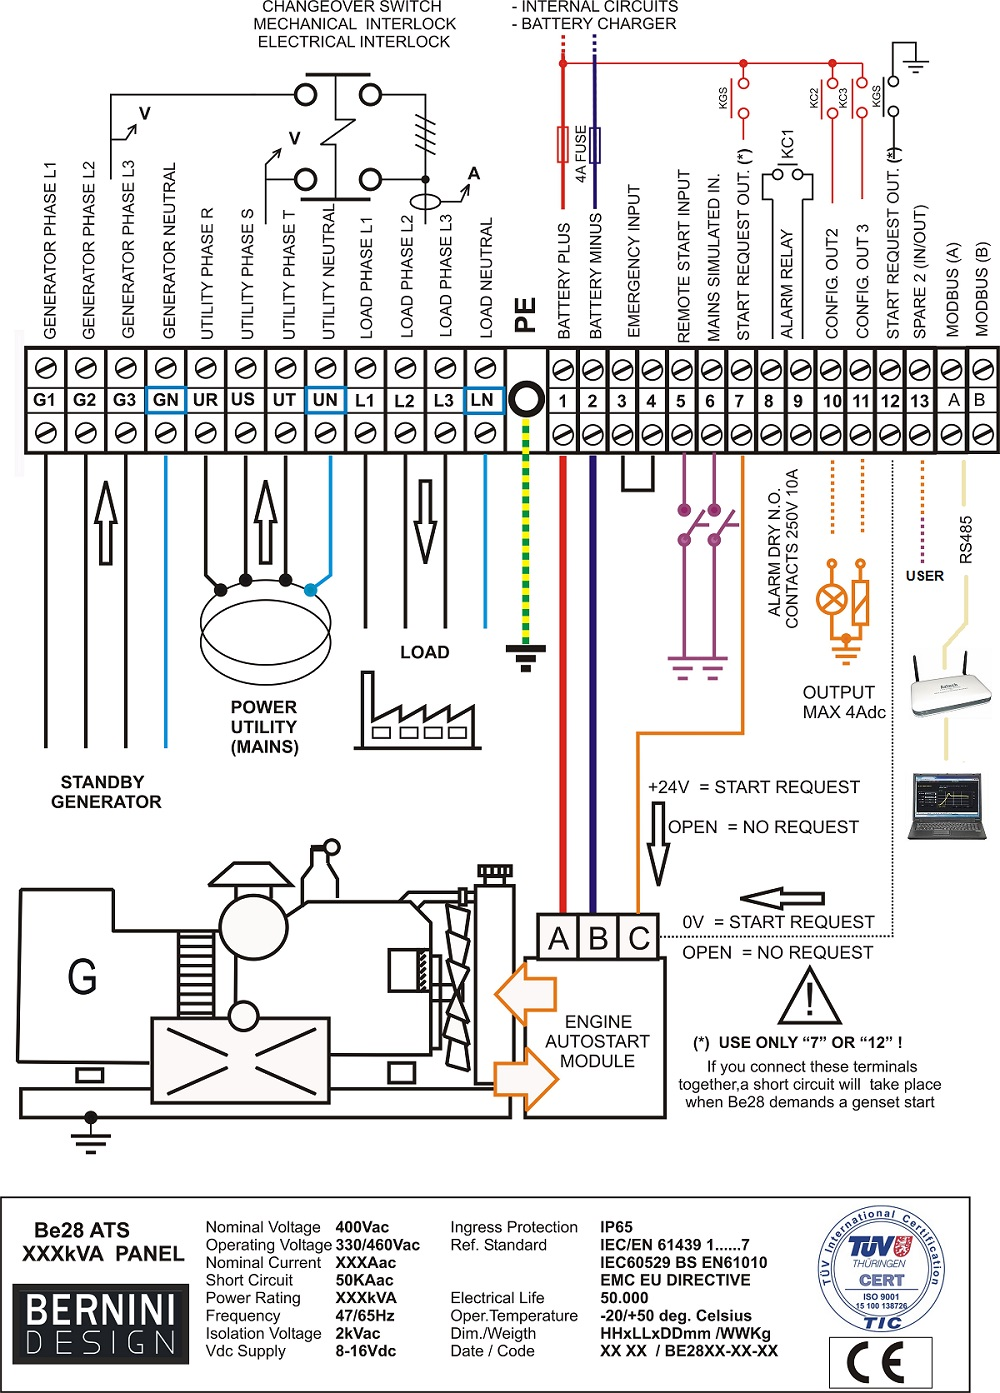 hight resolution of ge ats wiring diagram 16 11 ulrich temme de u2022